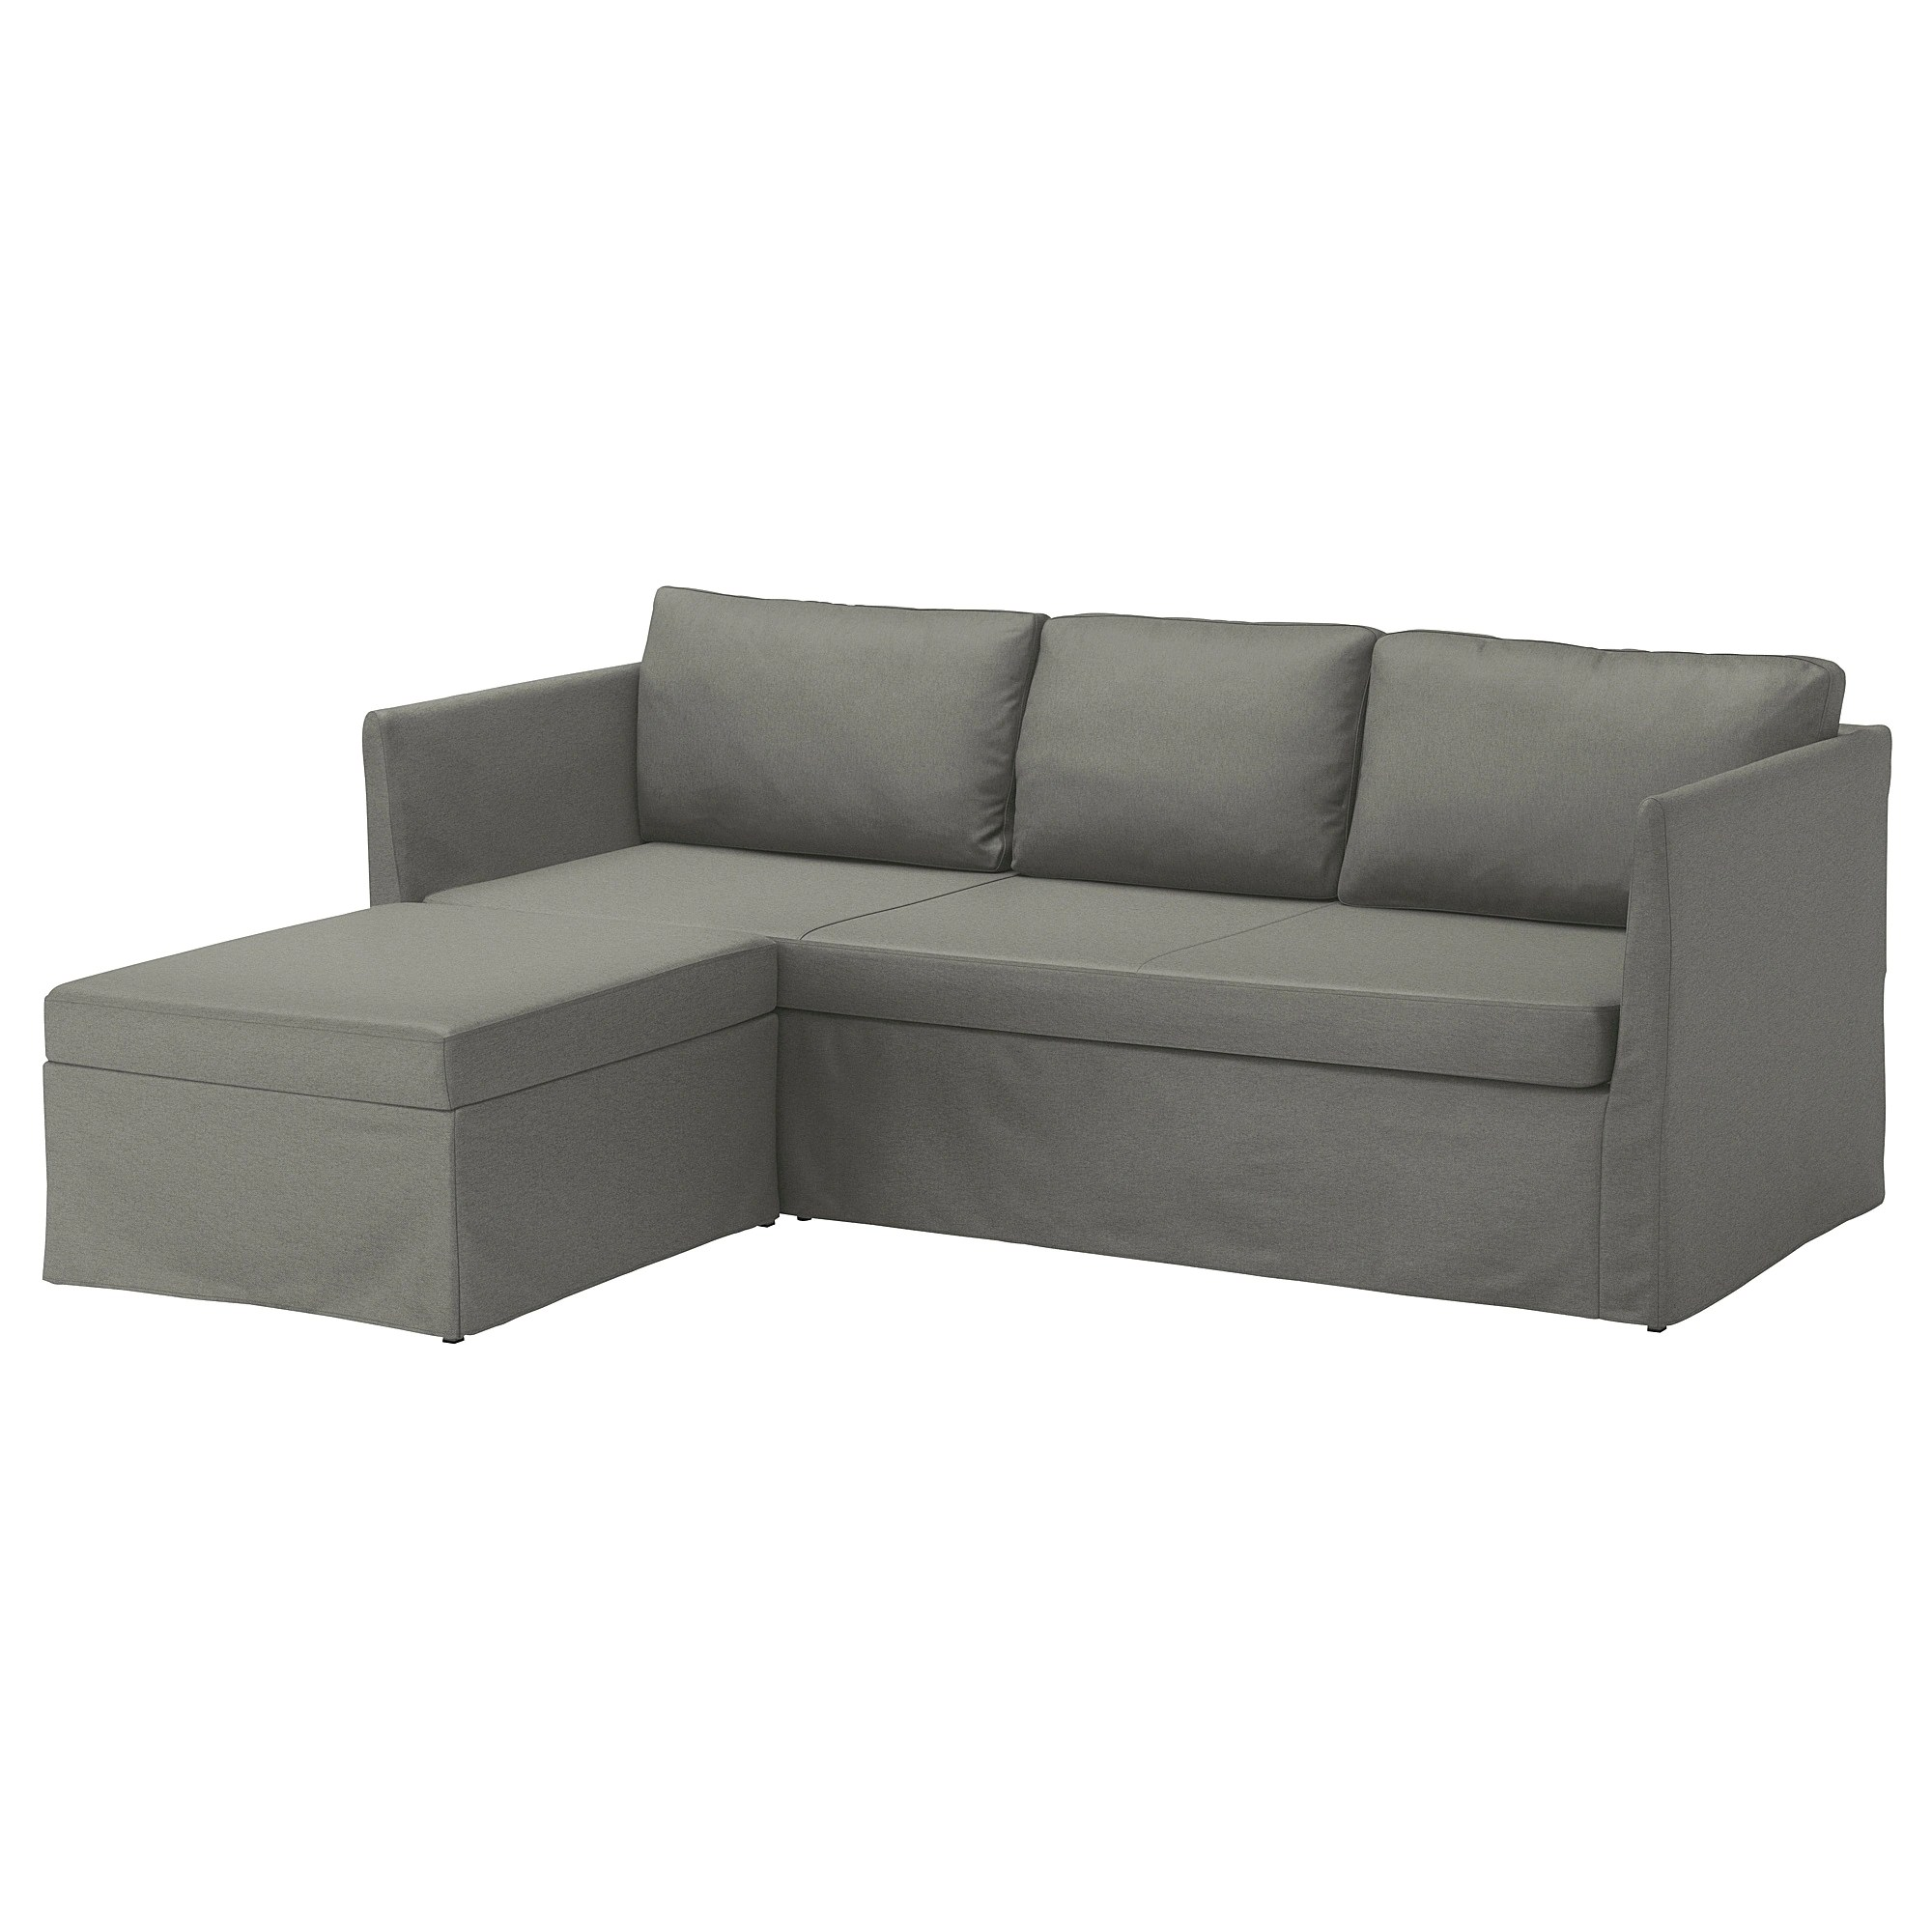 sofa bad thomasville fredericksburg table brathult corner bed borred gray green ikea this is